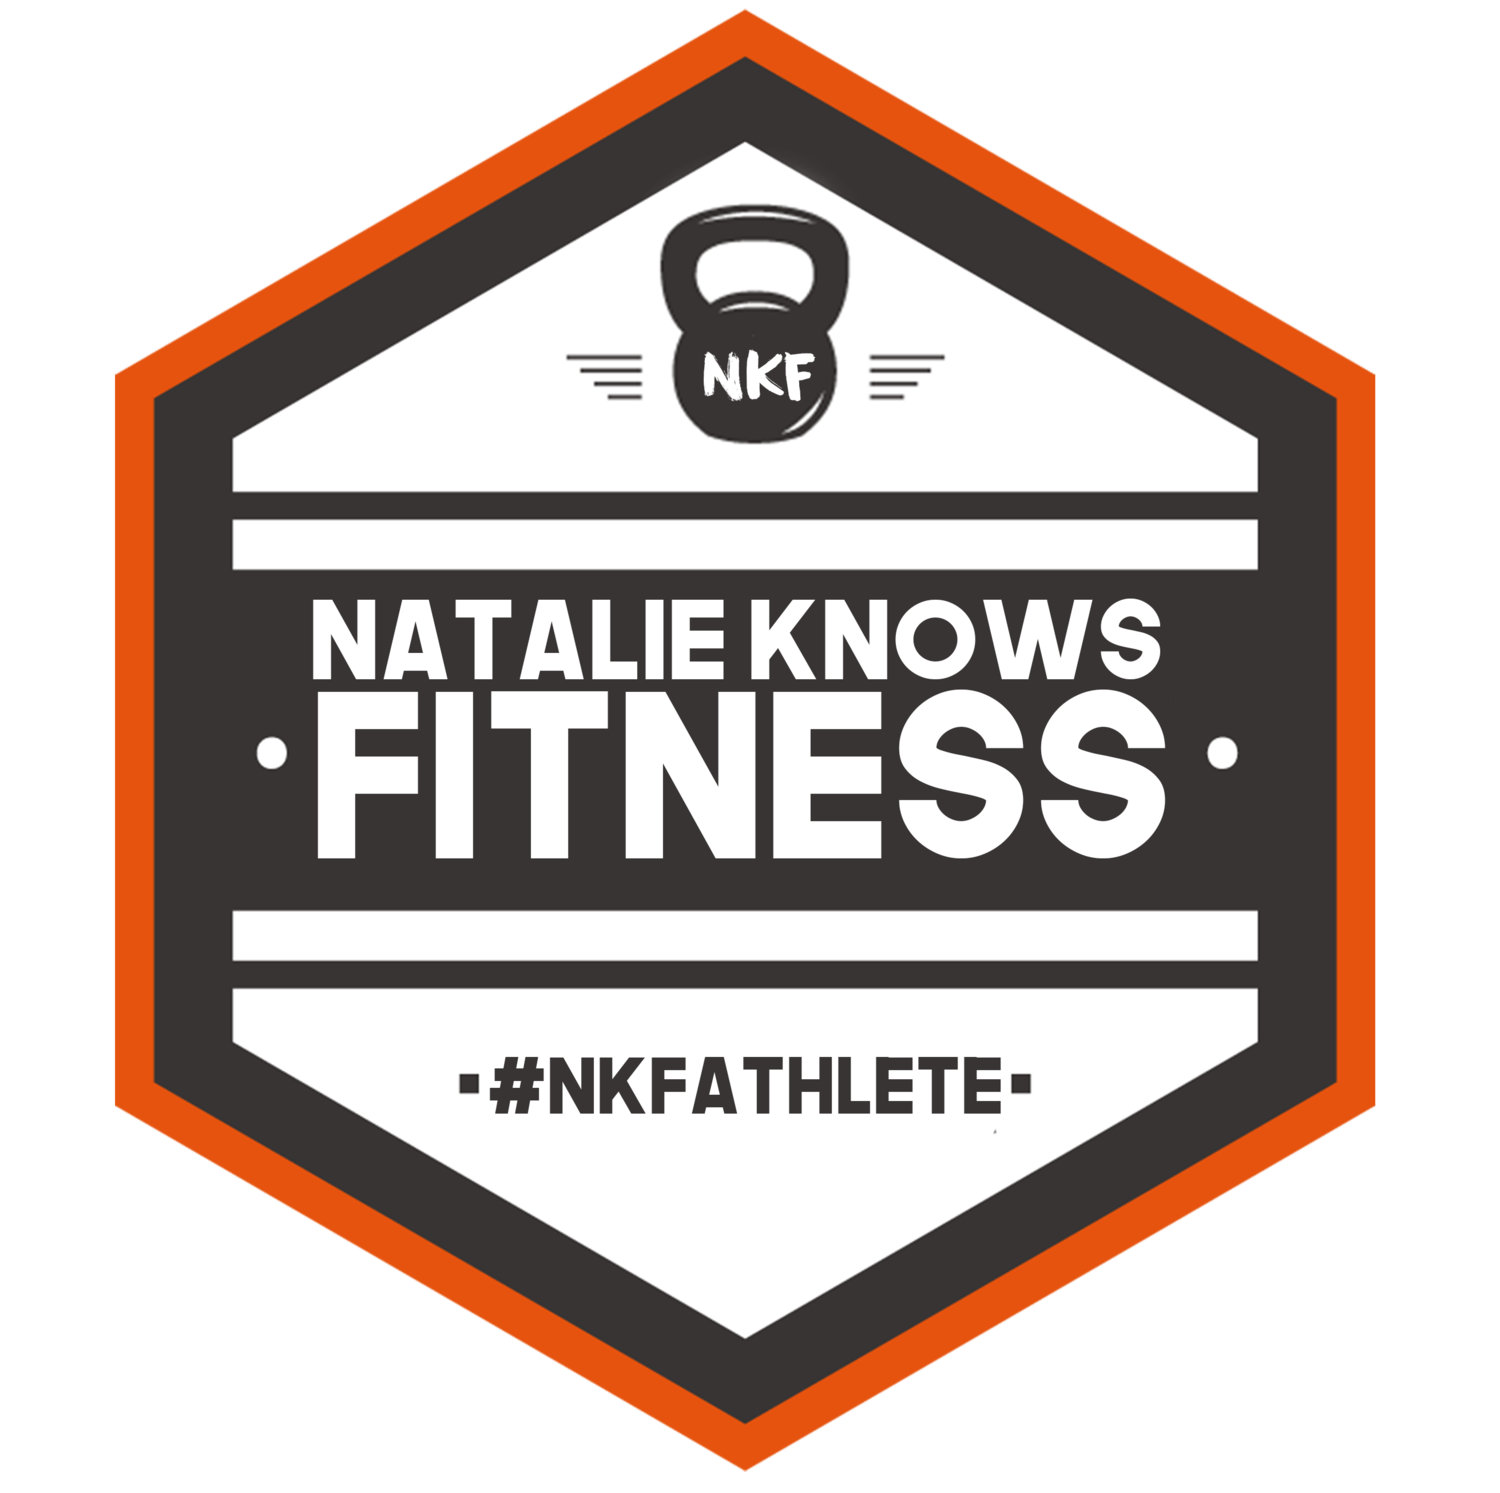 Natalie Knows Fitness